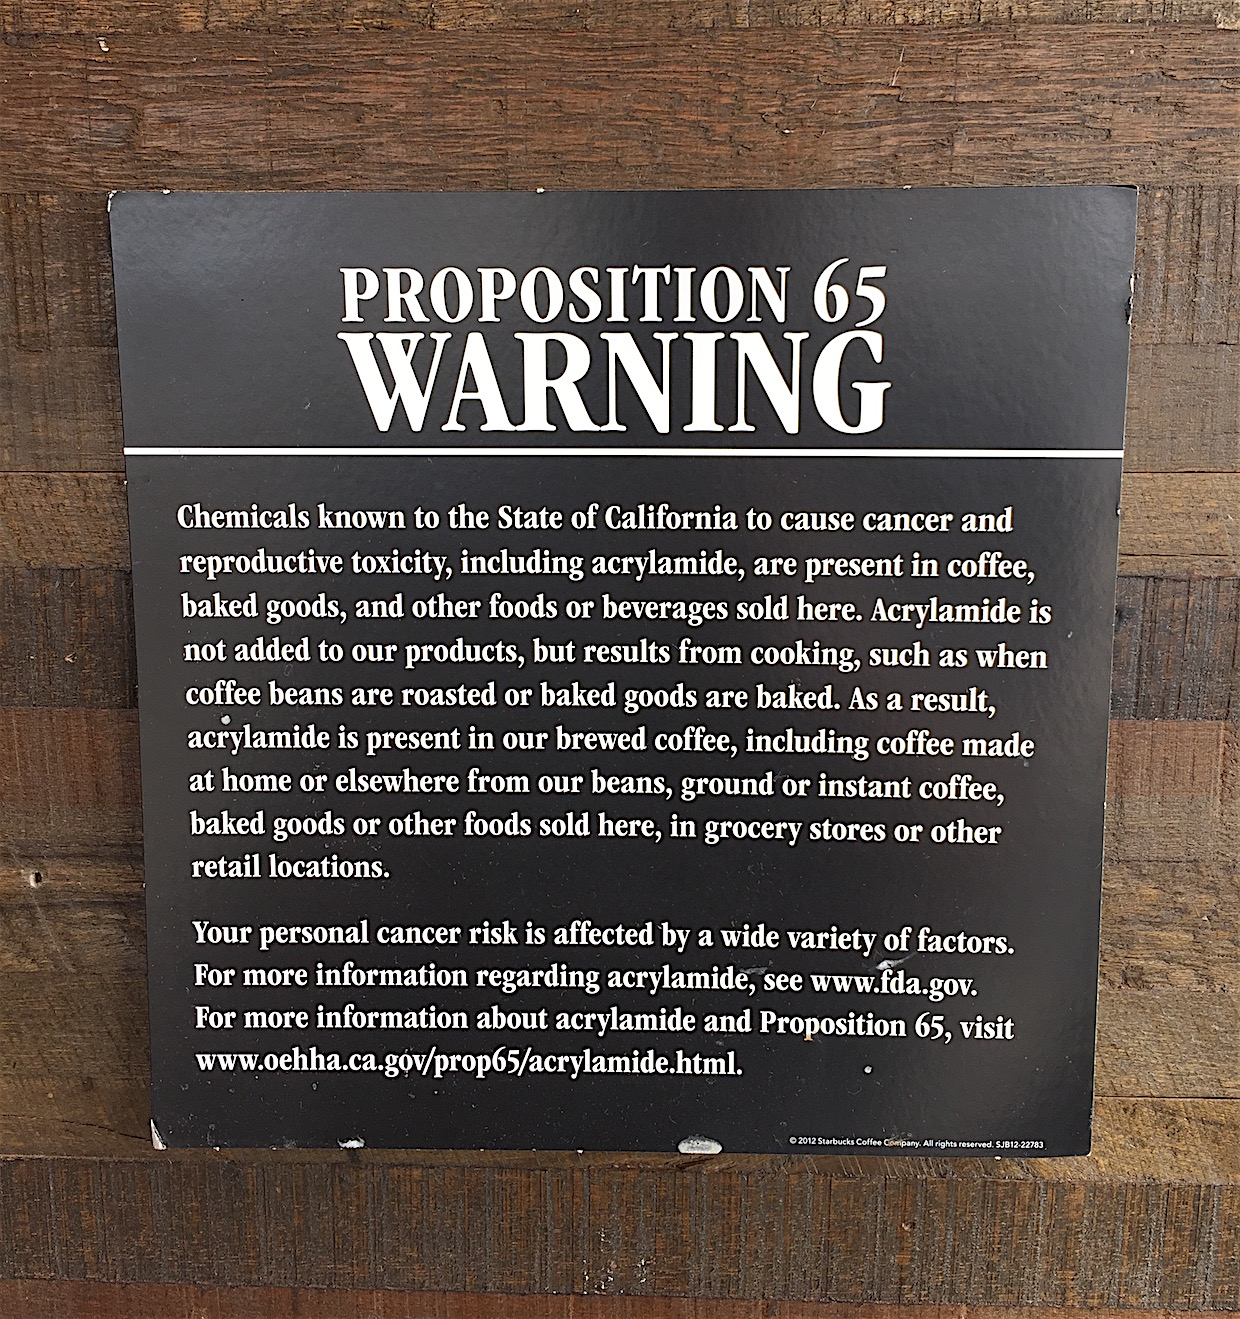 Prop 65 Starbucks coffee cancer warning